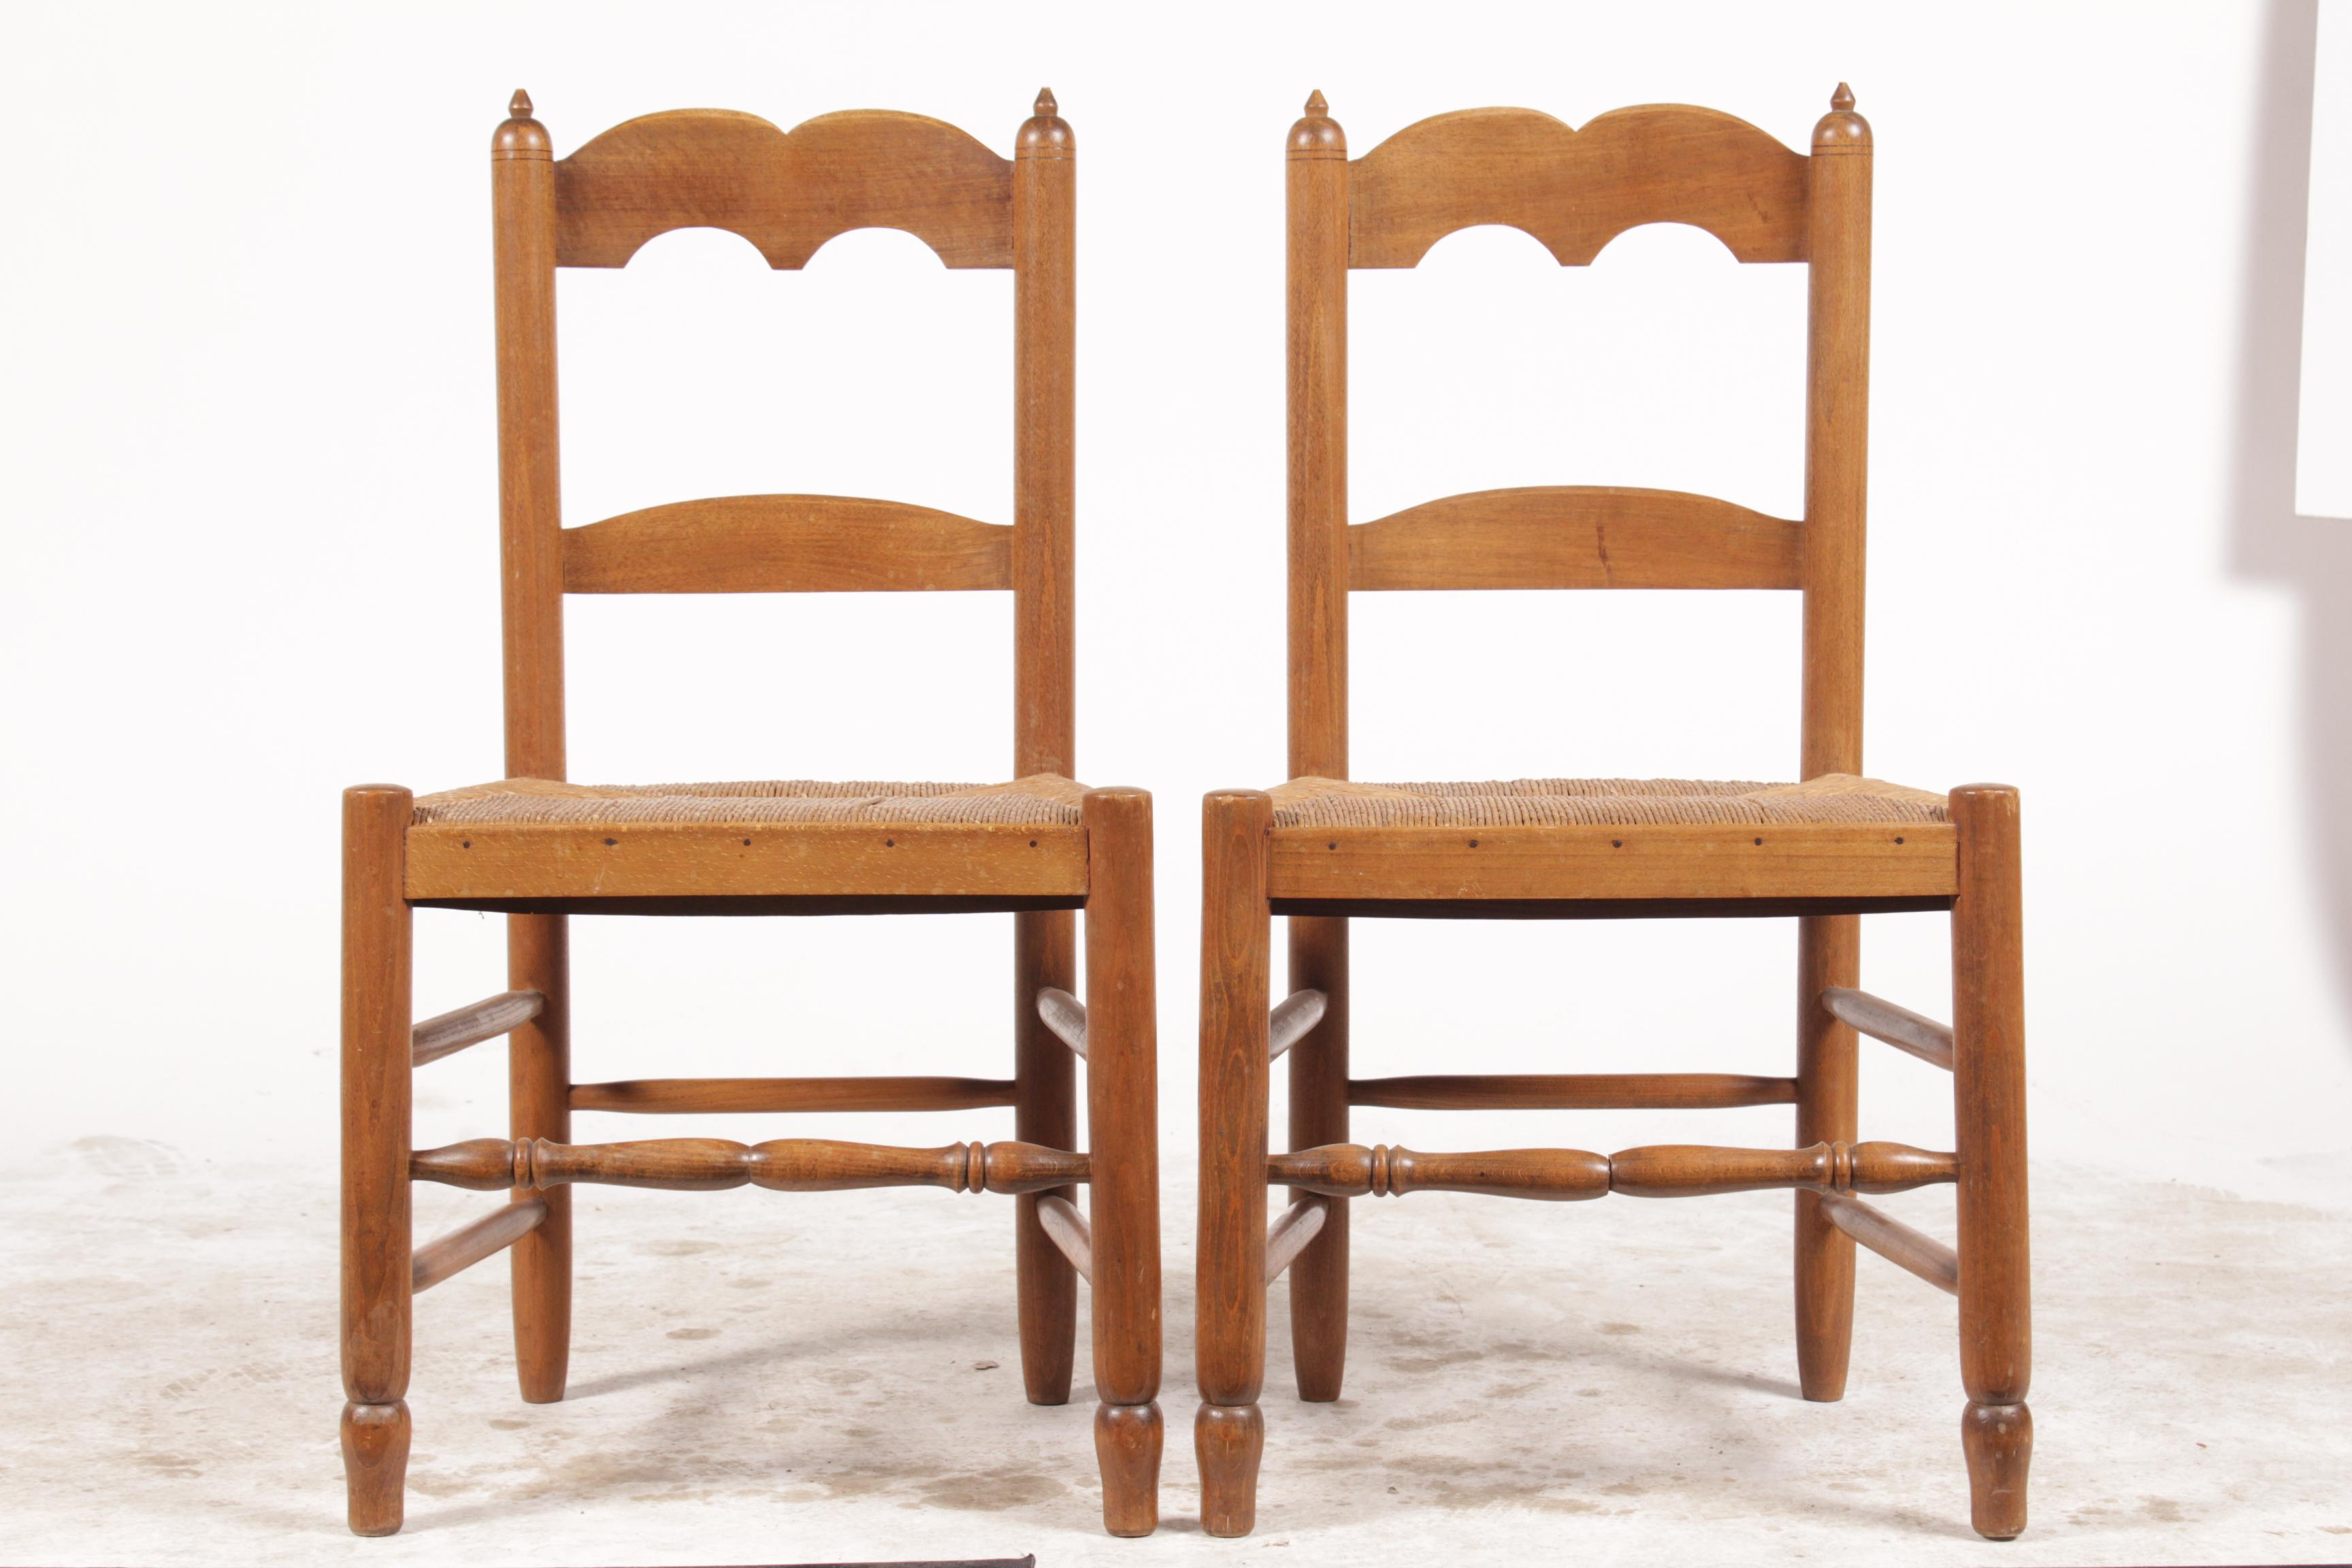 Awesome Pair Of Petite French Country Style Chairs Featuring Double Arch Splat  Backs, Finials And